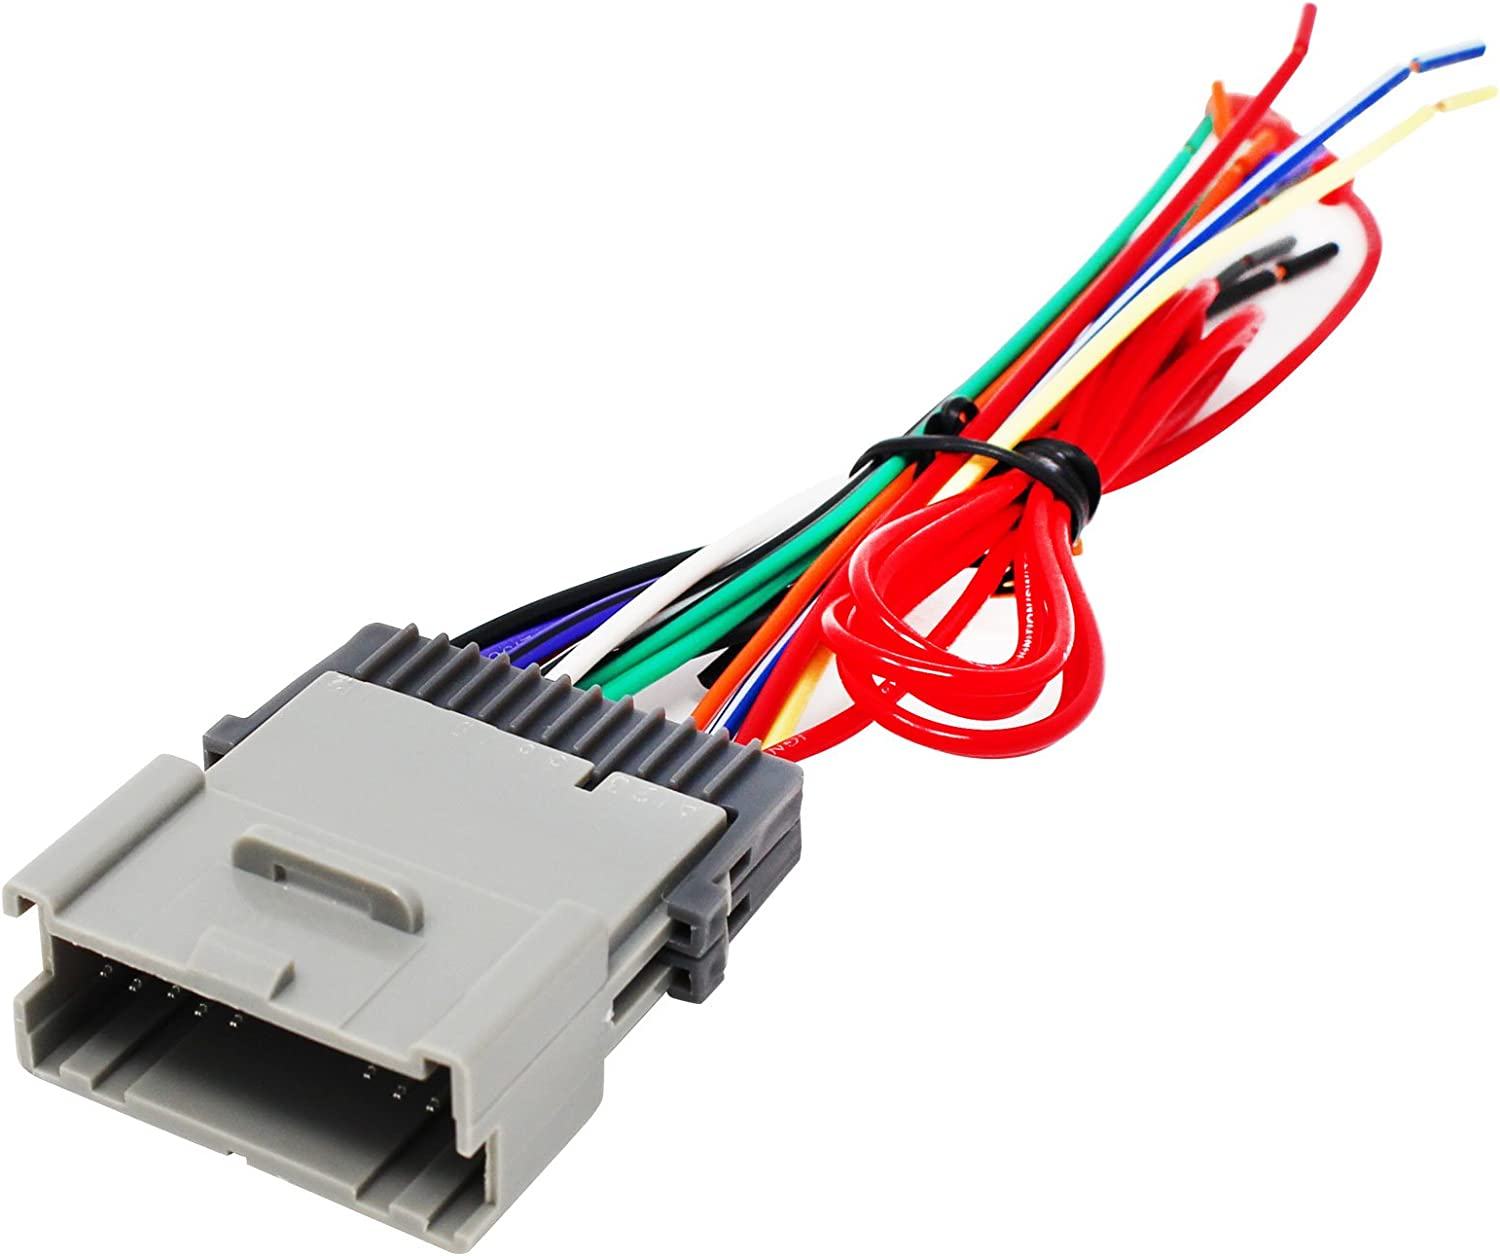 Replacement Radio Wiring Harness for 2005 Hyundai Santa Fe Base Sport  Utility 4-Door 2.7L - Car Stereo Connector: Car Electronics - Amazon.com | Hyundai Santa Fe Radio Wiring Harness |  | Amazon.com